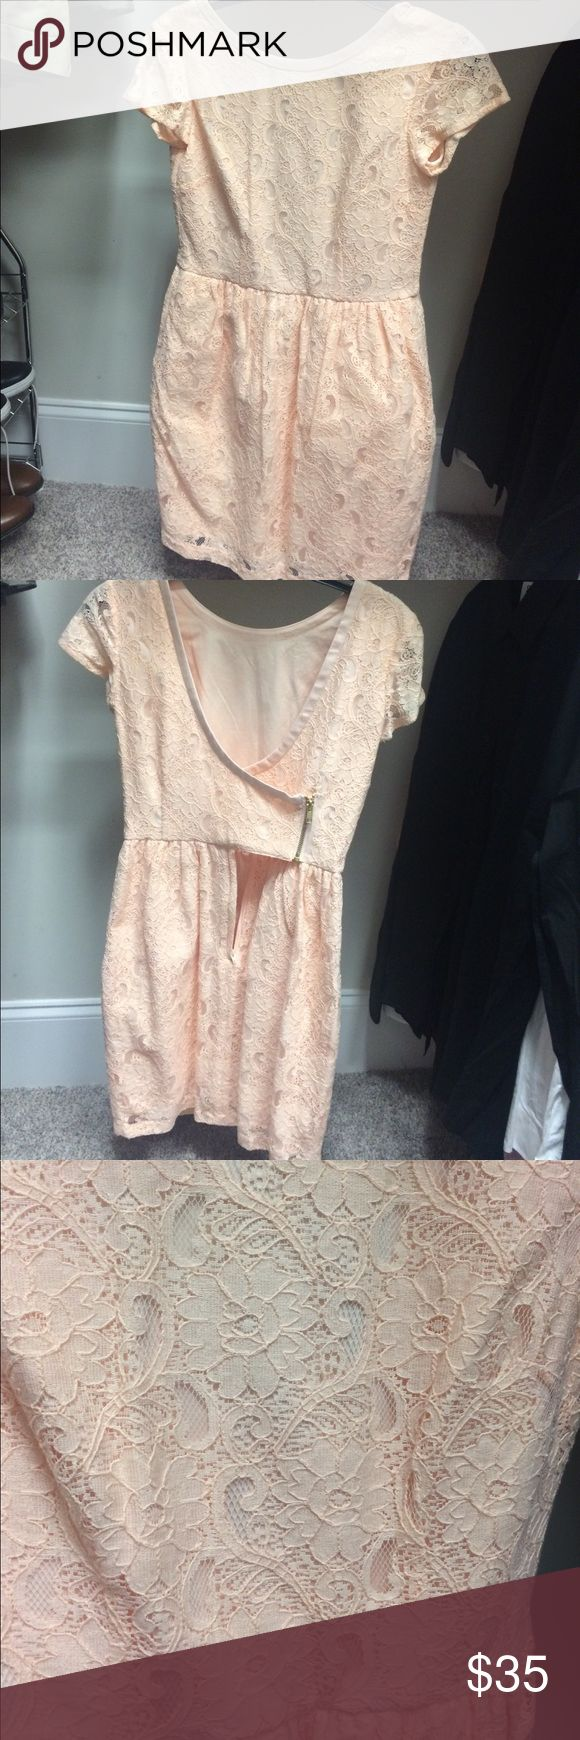 Peach Lace dress Peach lace mini dress...very dainty & girly-girl. Fitted around waste, low dip back, fitted on hips. H&M Dresses Mini